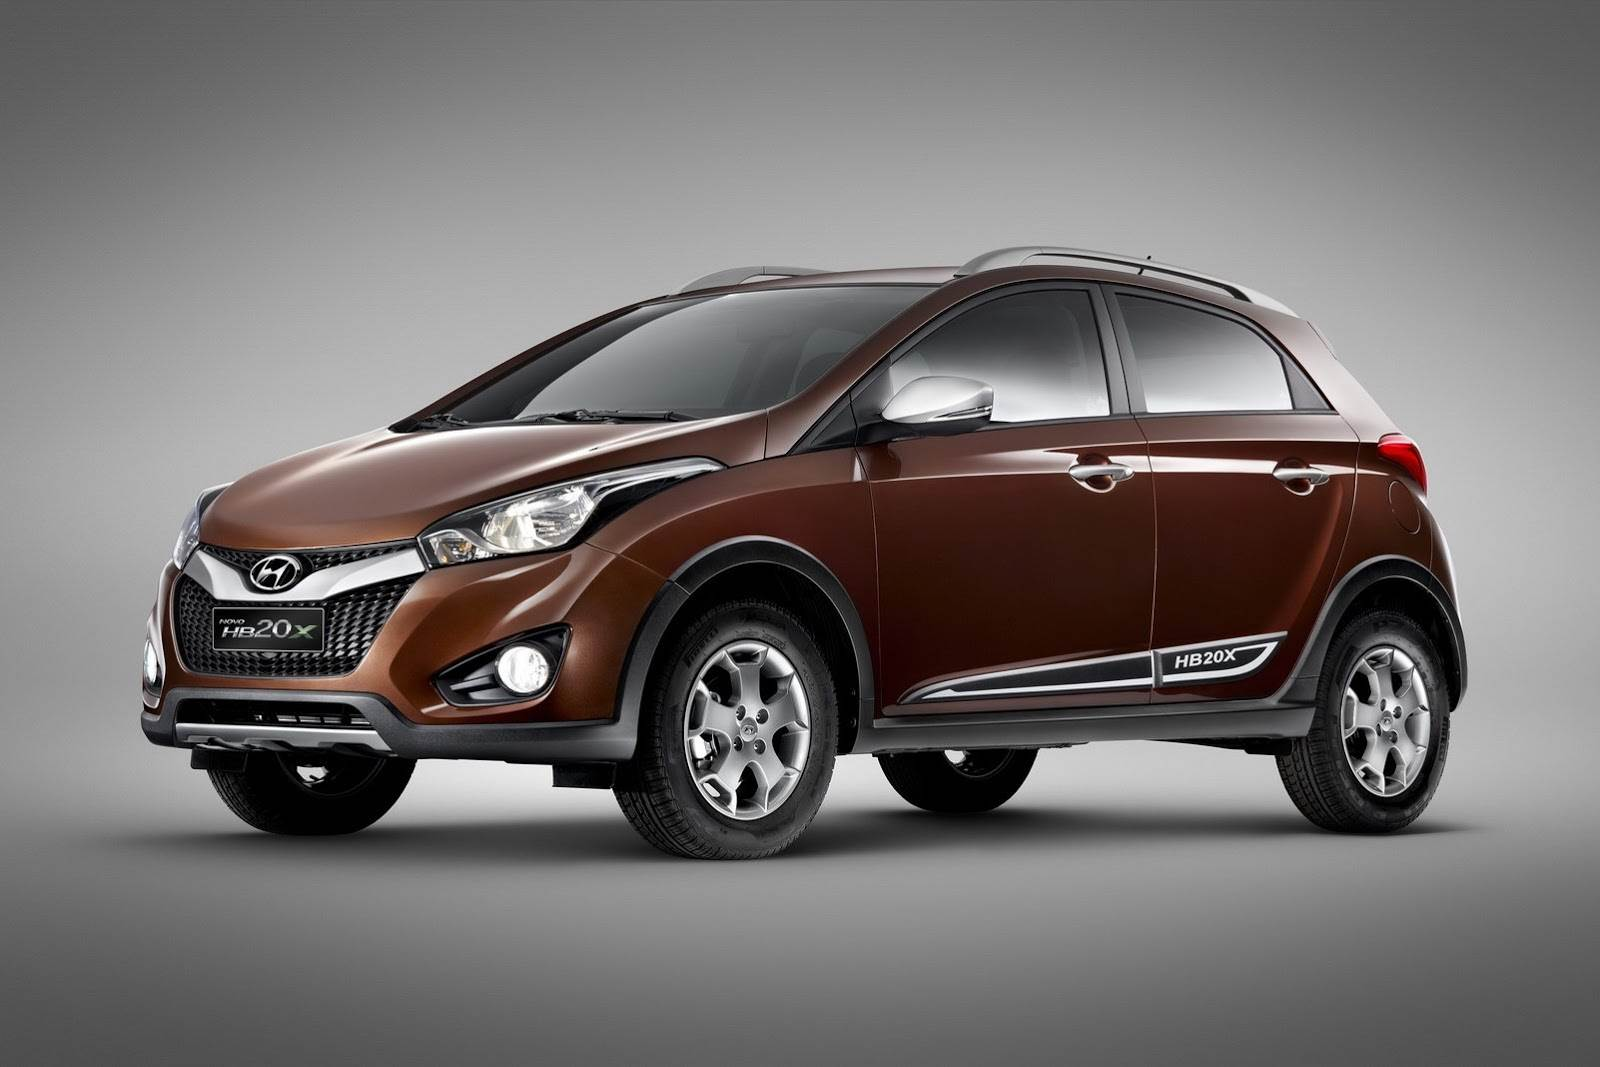 Hyundai HB20X Photo gallery